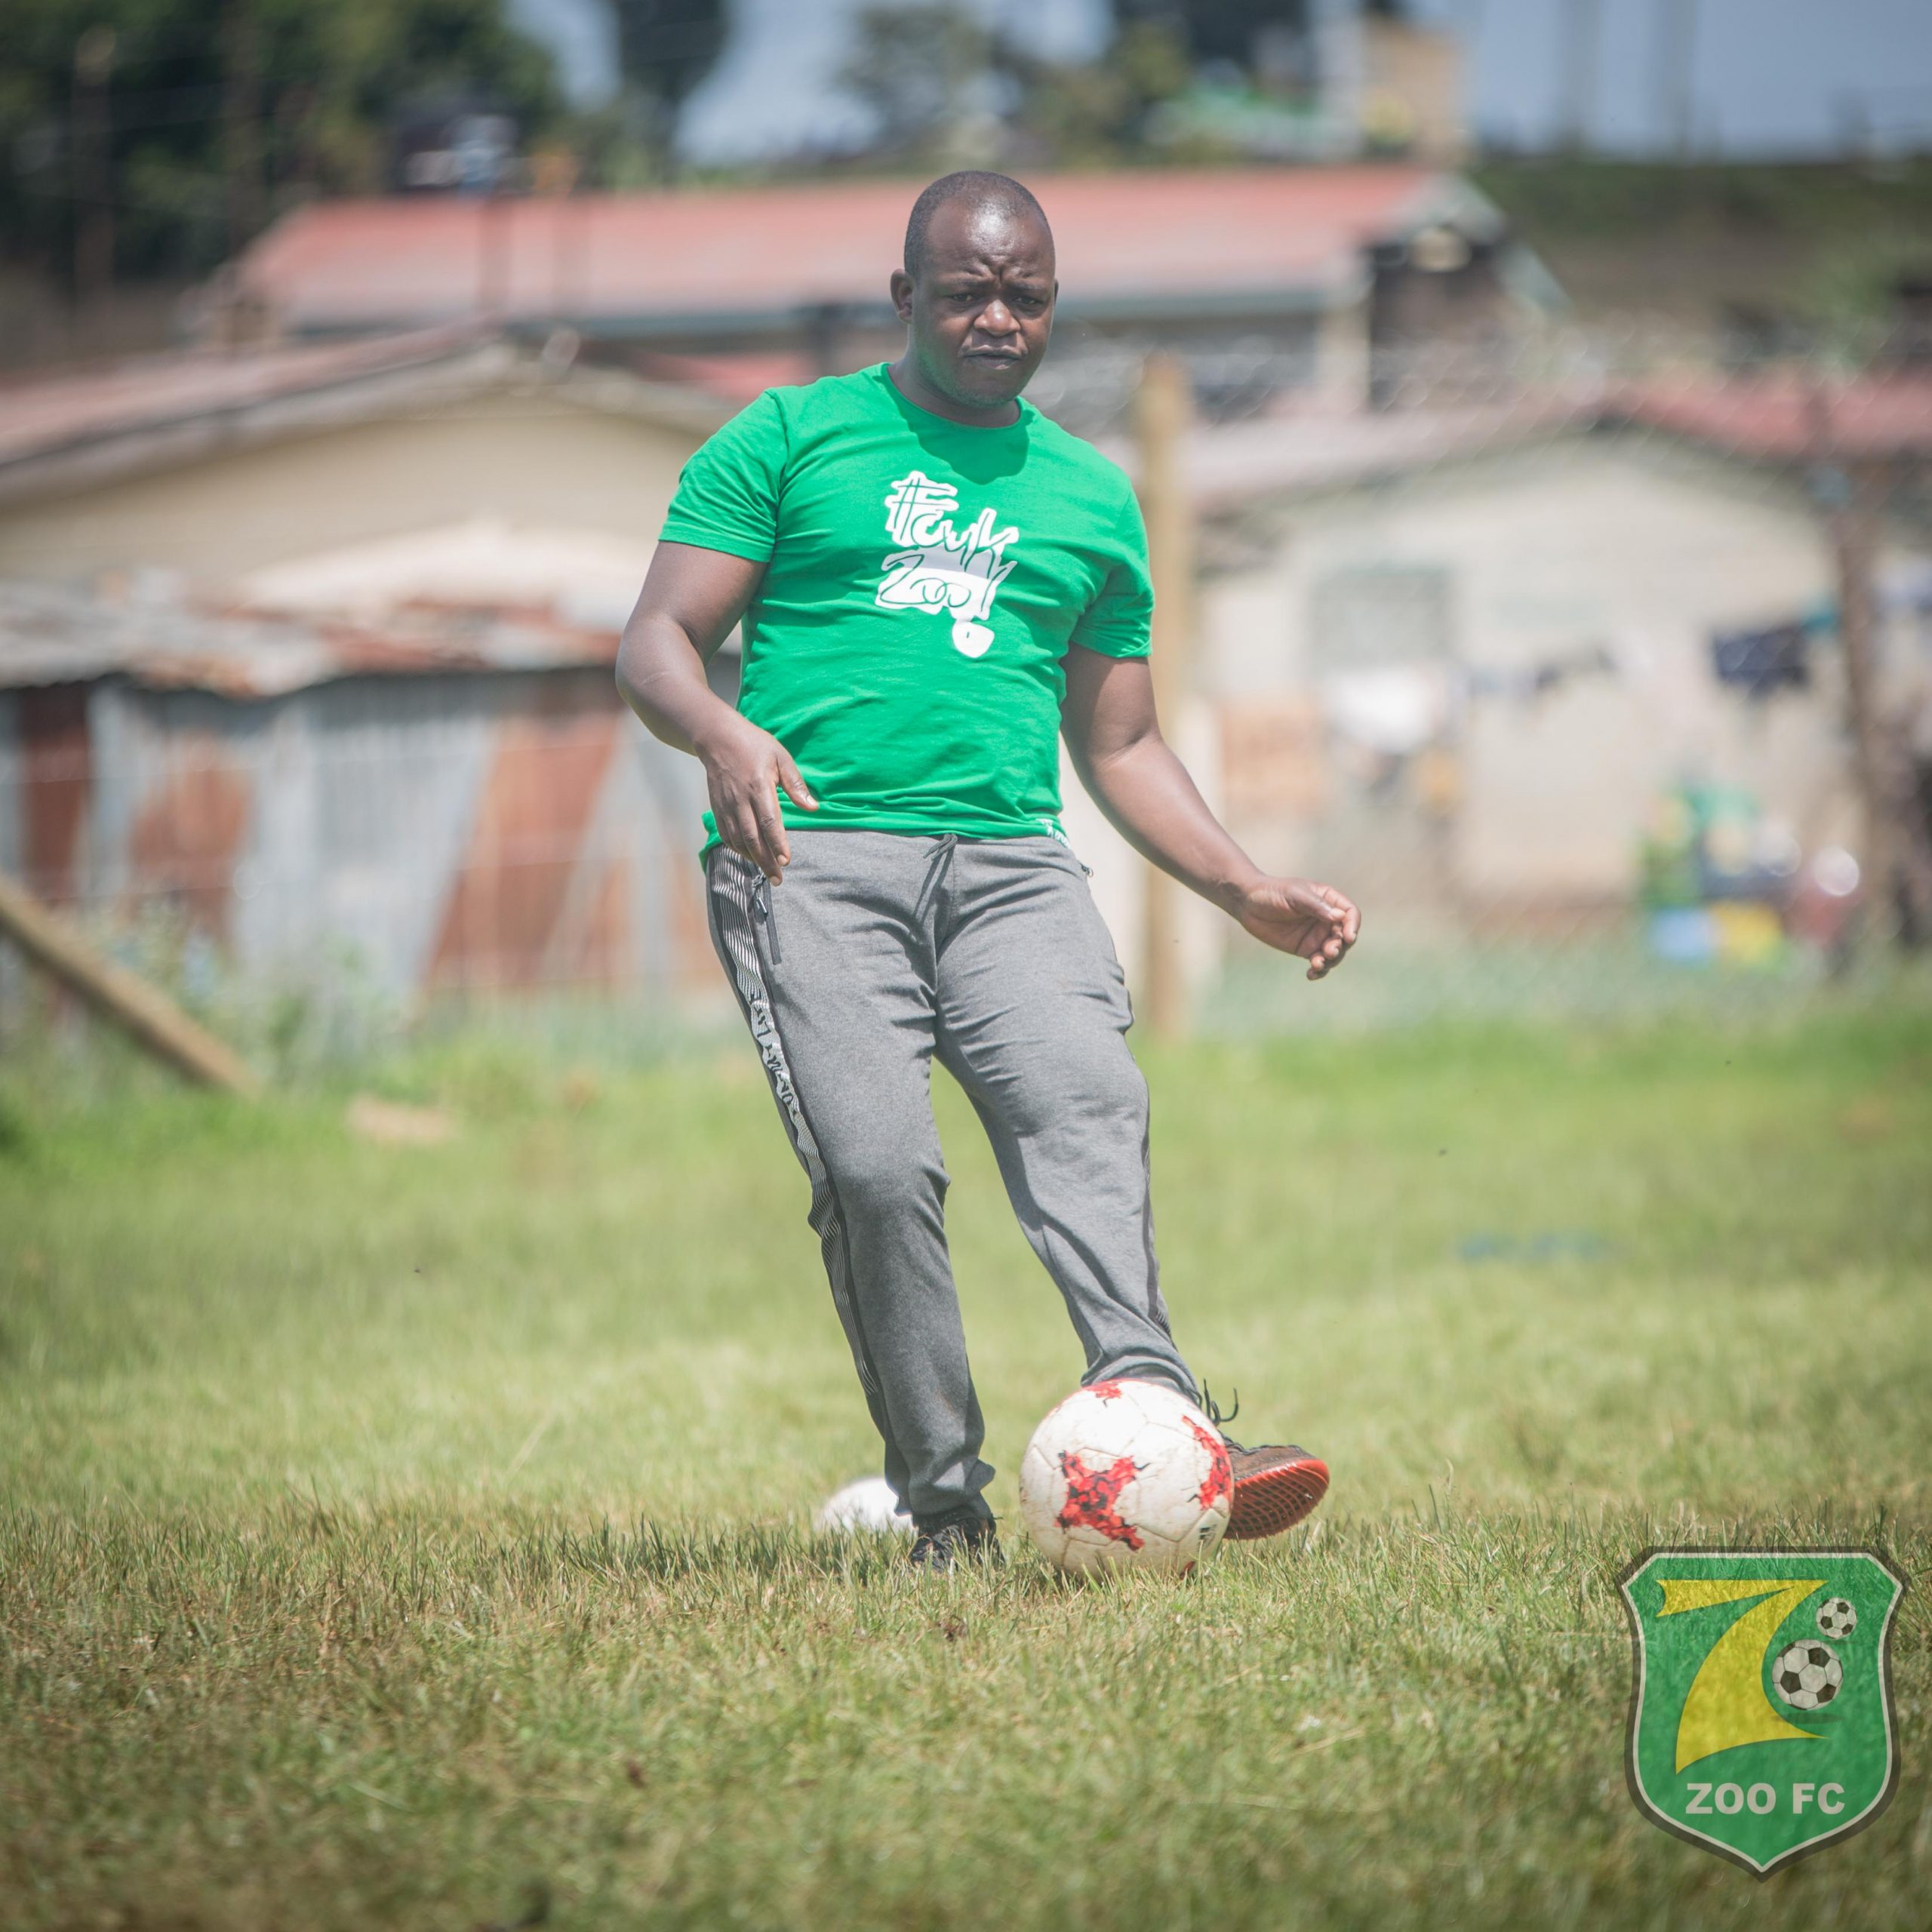 Zoo FC Chairman and Owner Ken Ochieng'. The club has refused to endorse FKF's media rights deal with StarTimes.